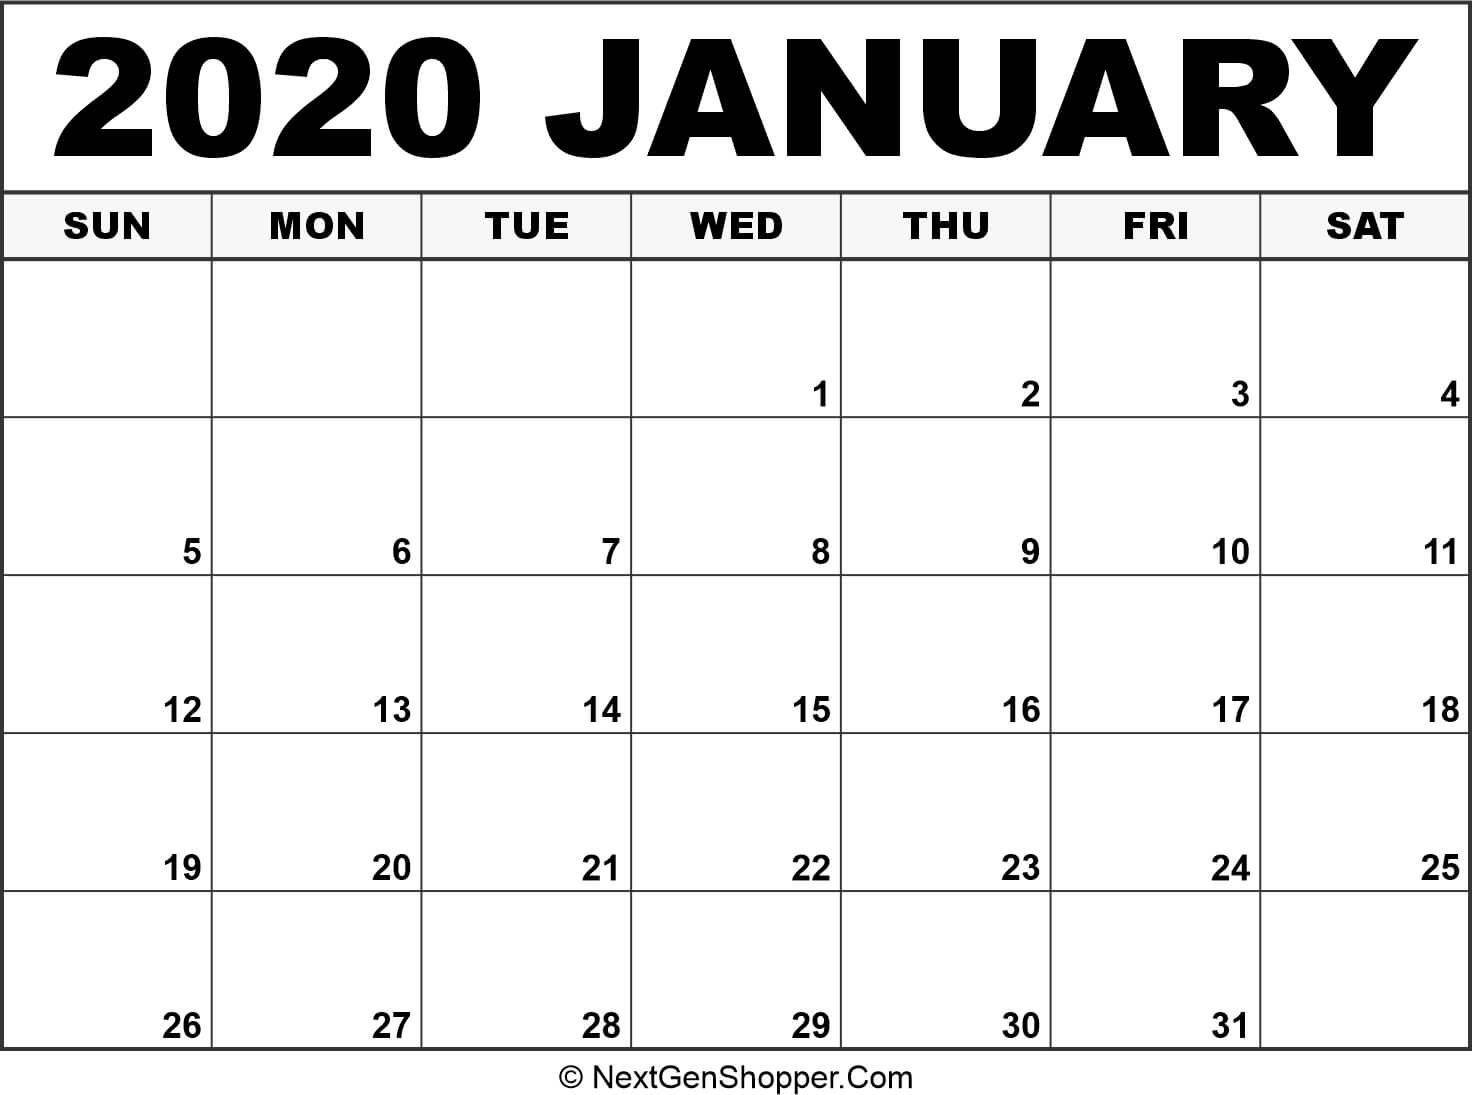 Printable January 2020 Calendar Template - Task Management